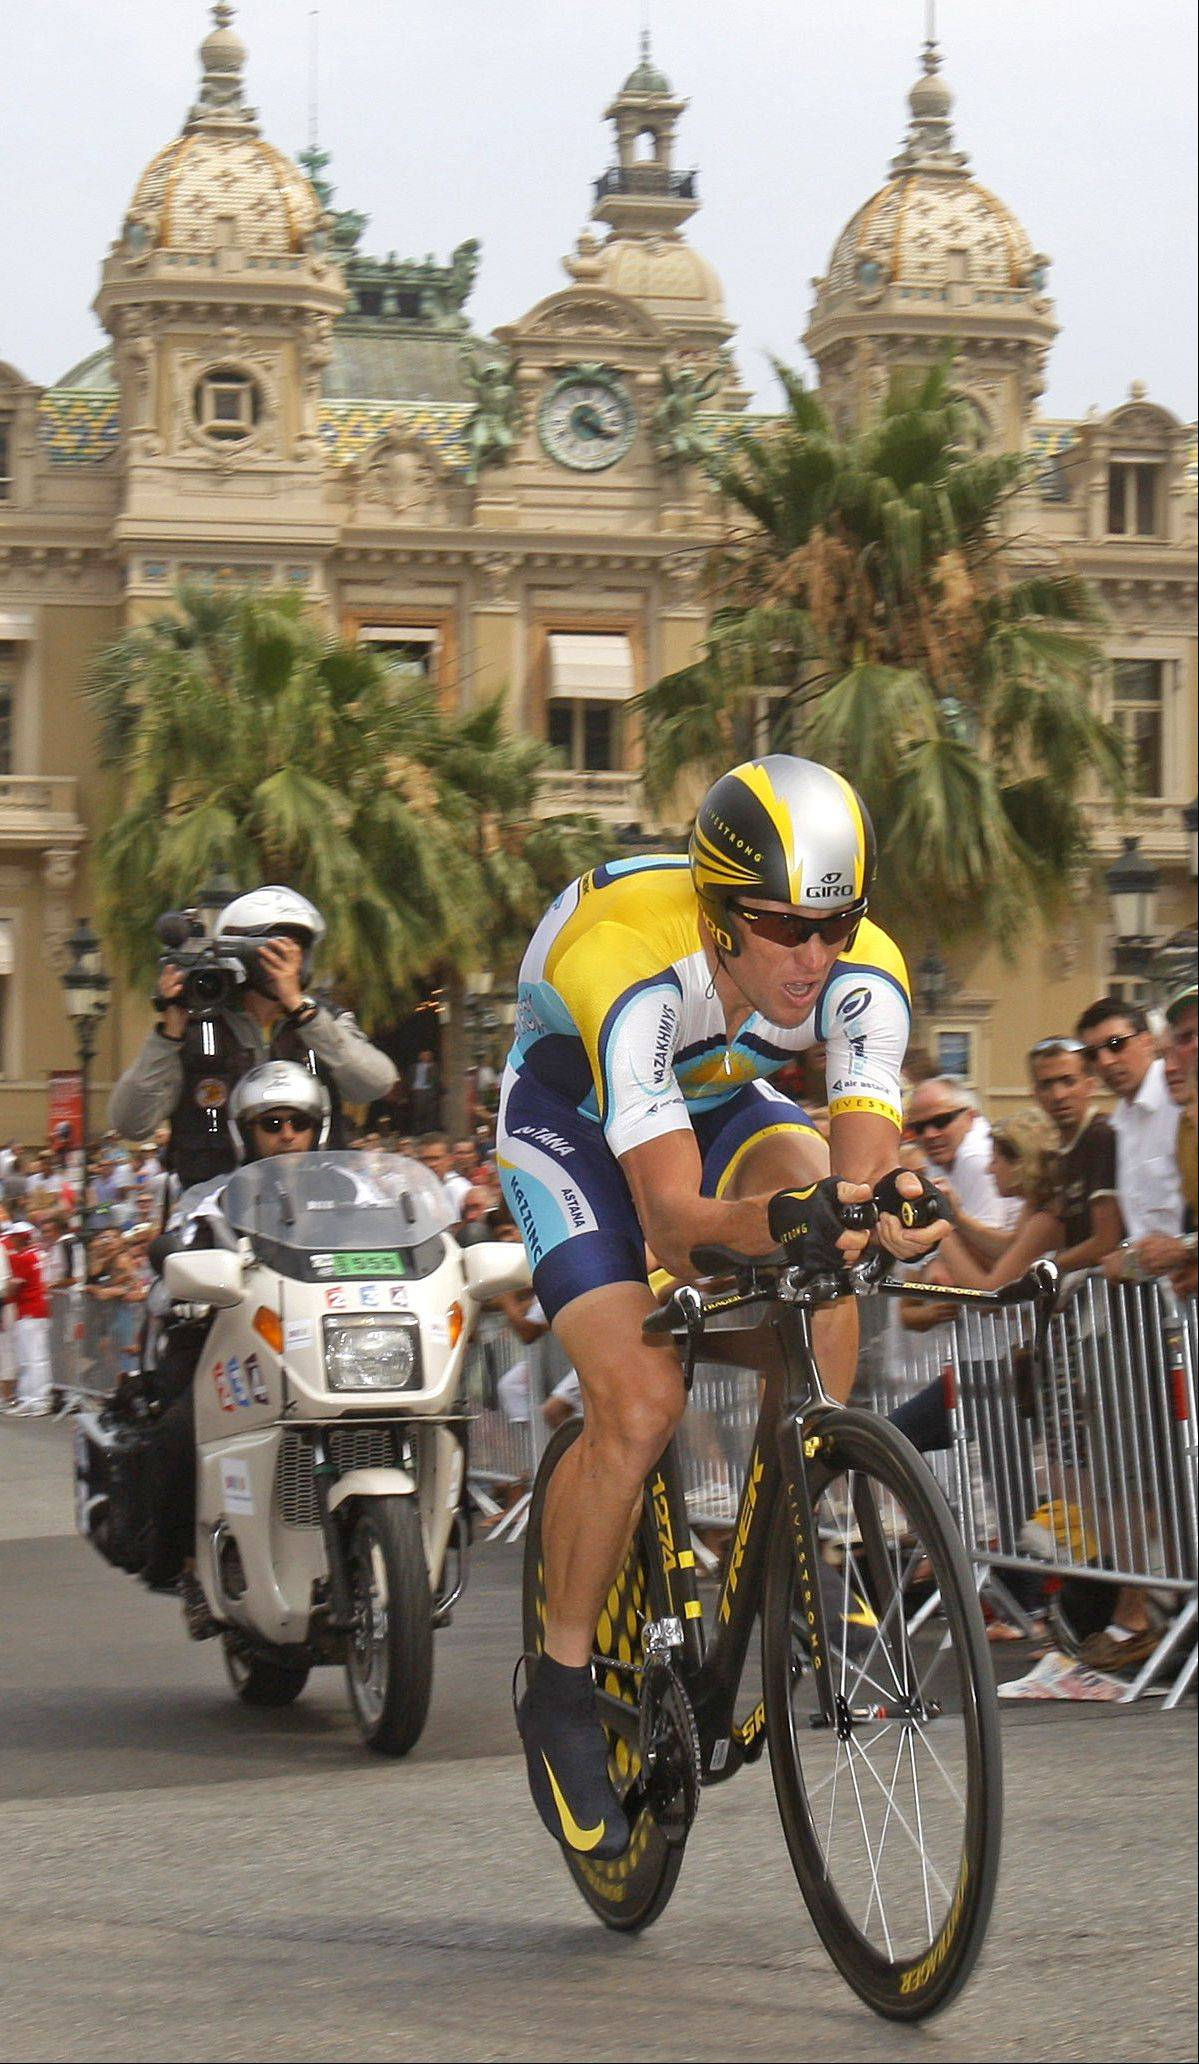 American seven-time Tour de France winner Lance Armstrong strains as he passes Monaco's Casino during the first stage of the Tour de France cycling race, an individual time trial of 15.5 kilometers (9.63 miles) with start and finish in Moncao, Saturday July 4, 2009.